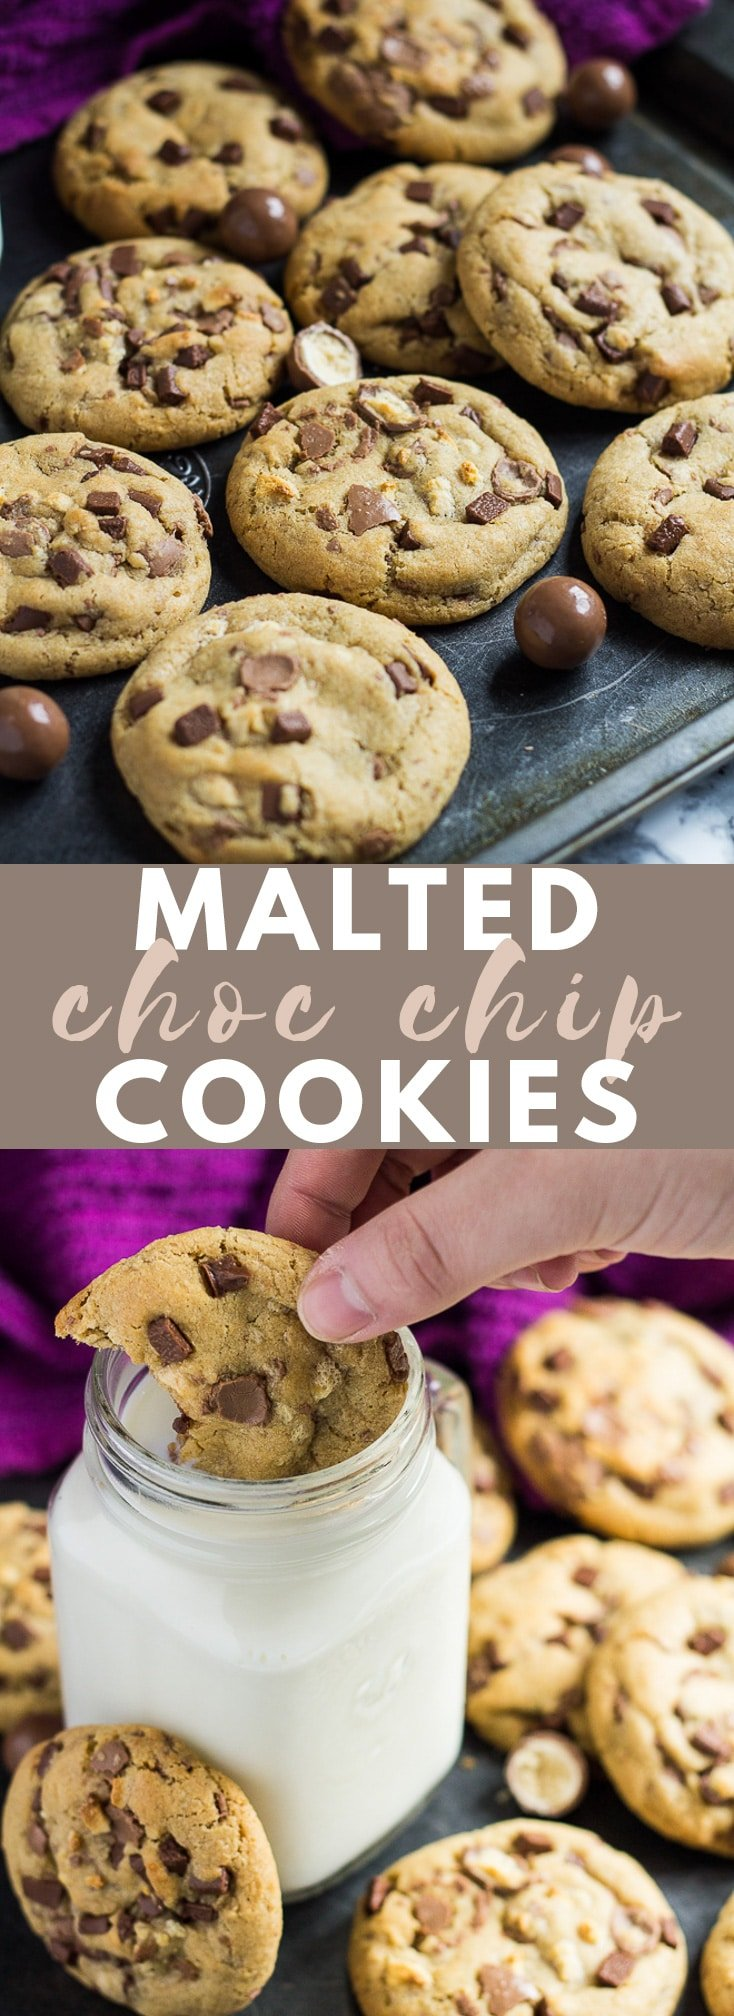 Malted Chocolate Chip Cookies - Deliciously thick, soft-baked cookies infused with malted milk powder, and loaded with Maltesers and chocolate chips! #malted #chocolatechipcookies #cookierecipes